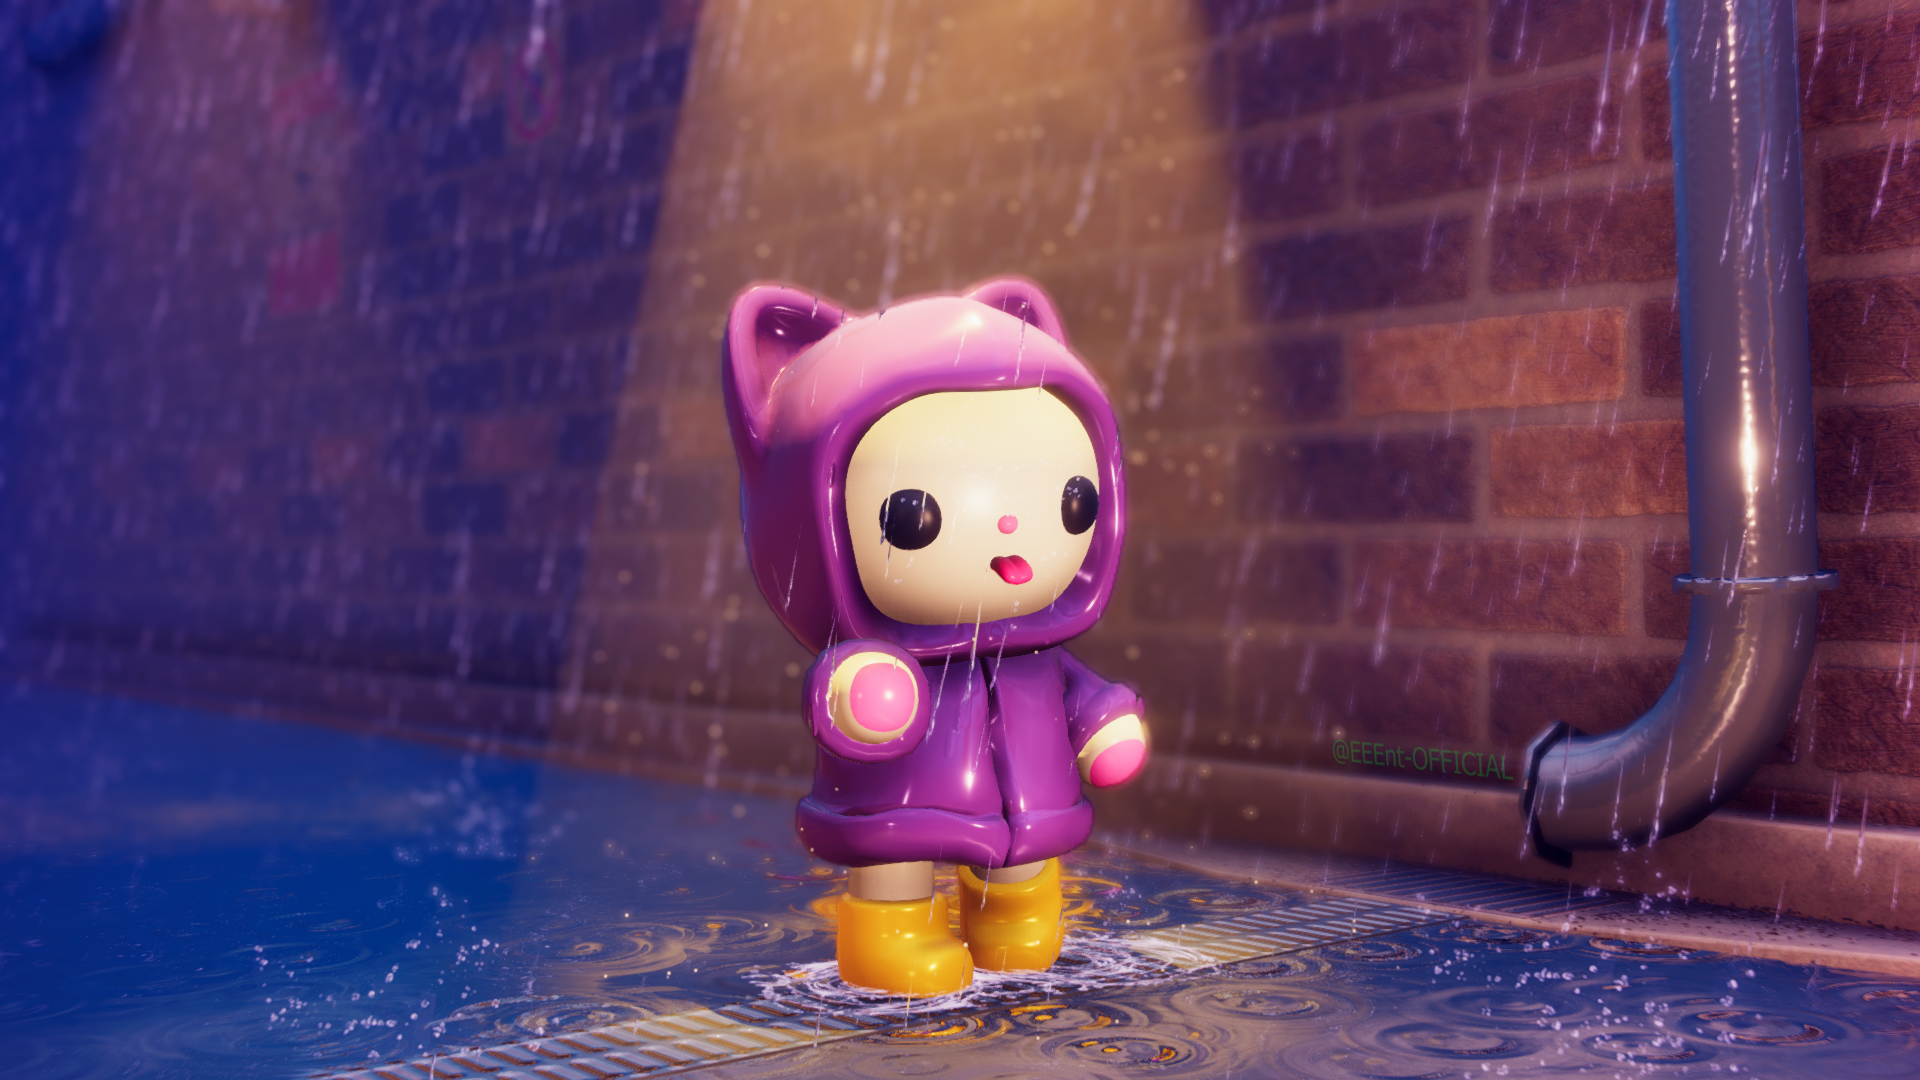 Raincoat Cat Chibi Tweaked 1920x1080.png